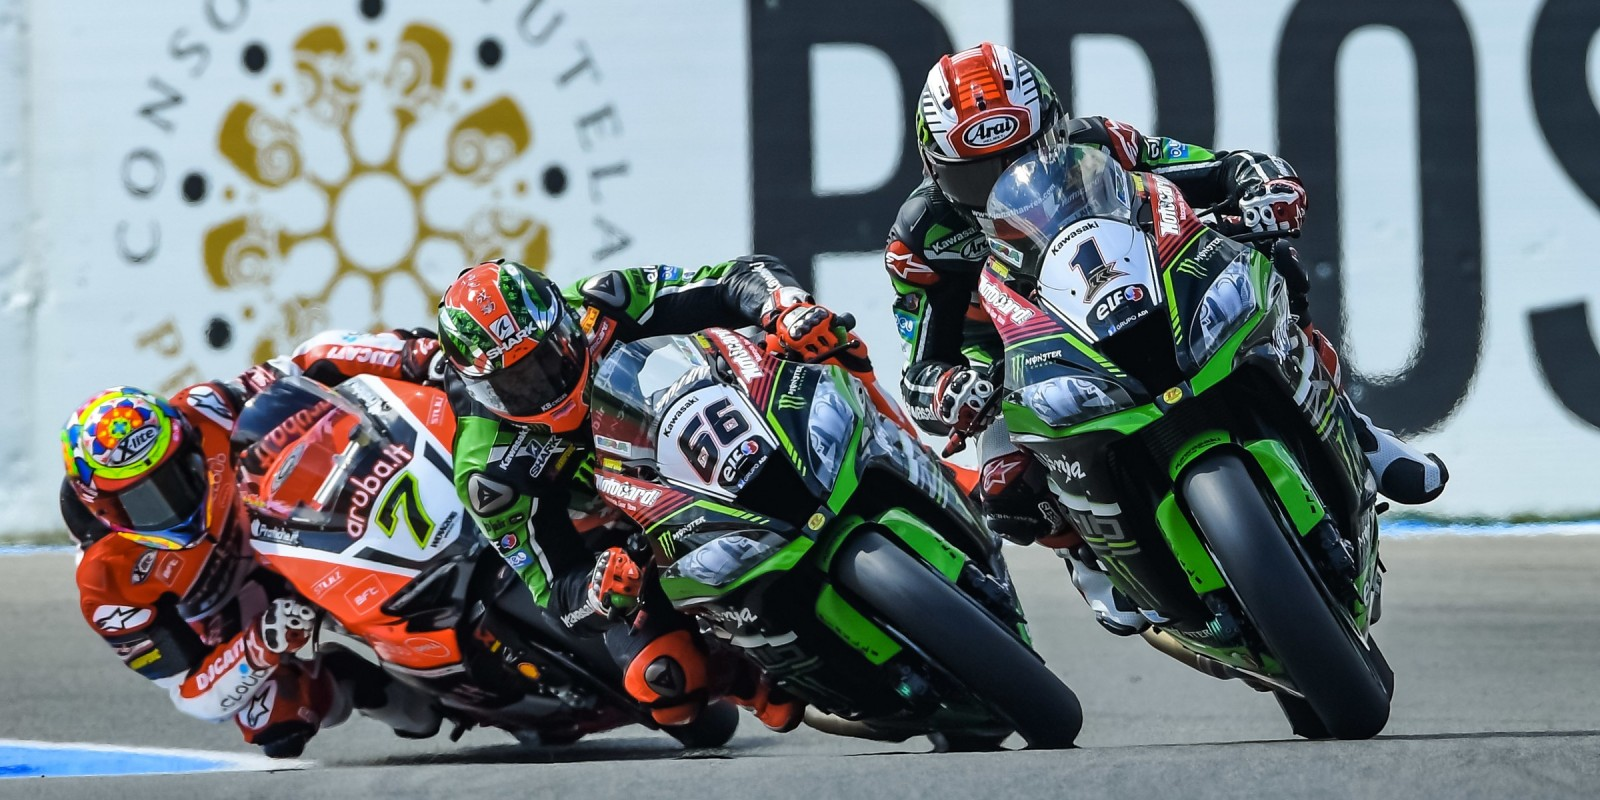 Tom Sykes and Jonathan Rea at the 2016 World Superbike Dutch round